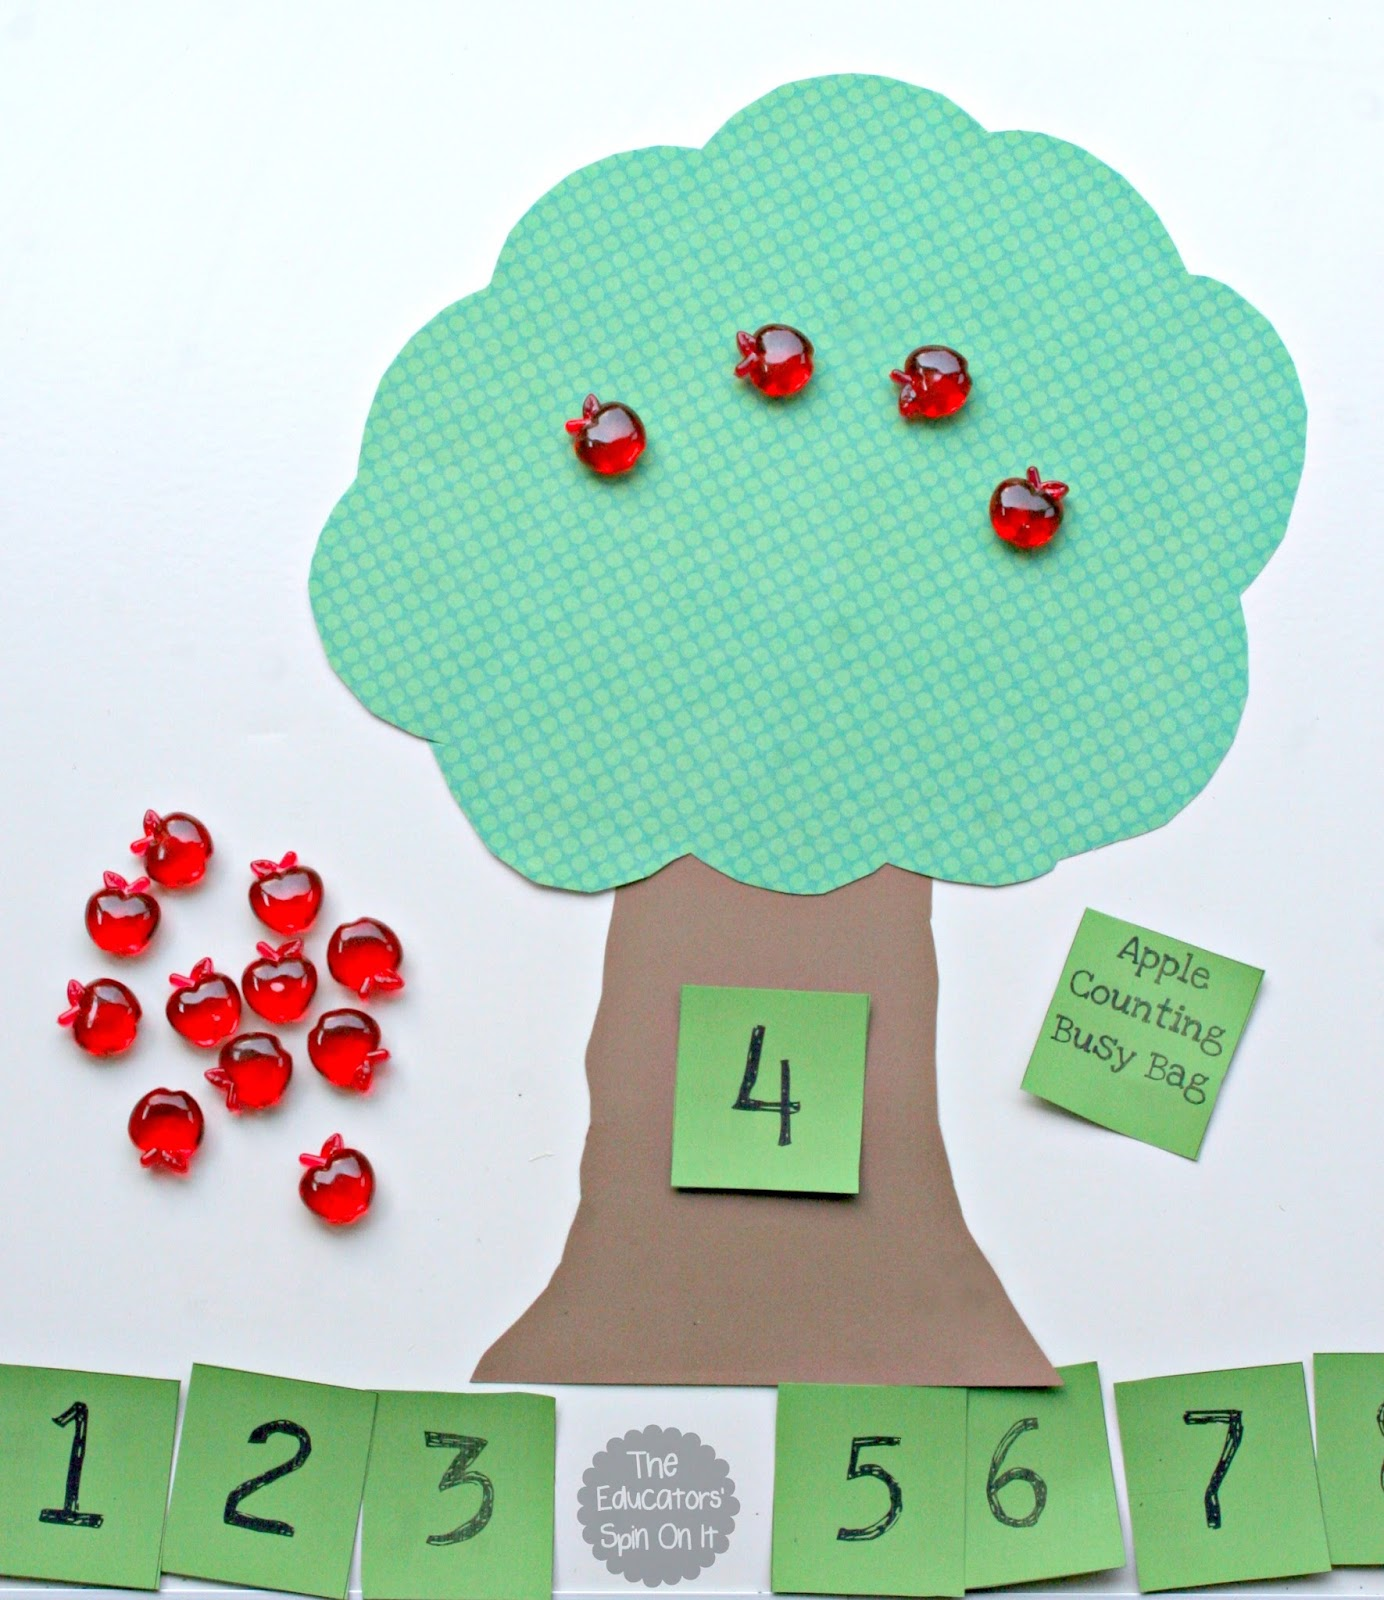 Counting Apples Busy Bag For Hands On Math Fun For